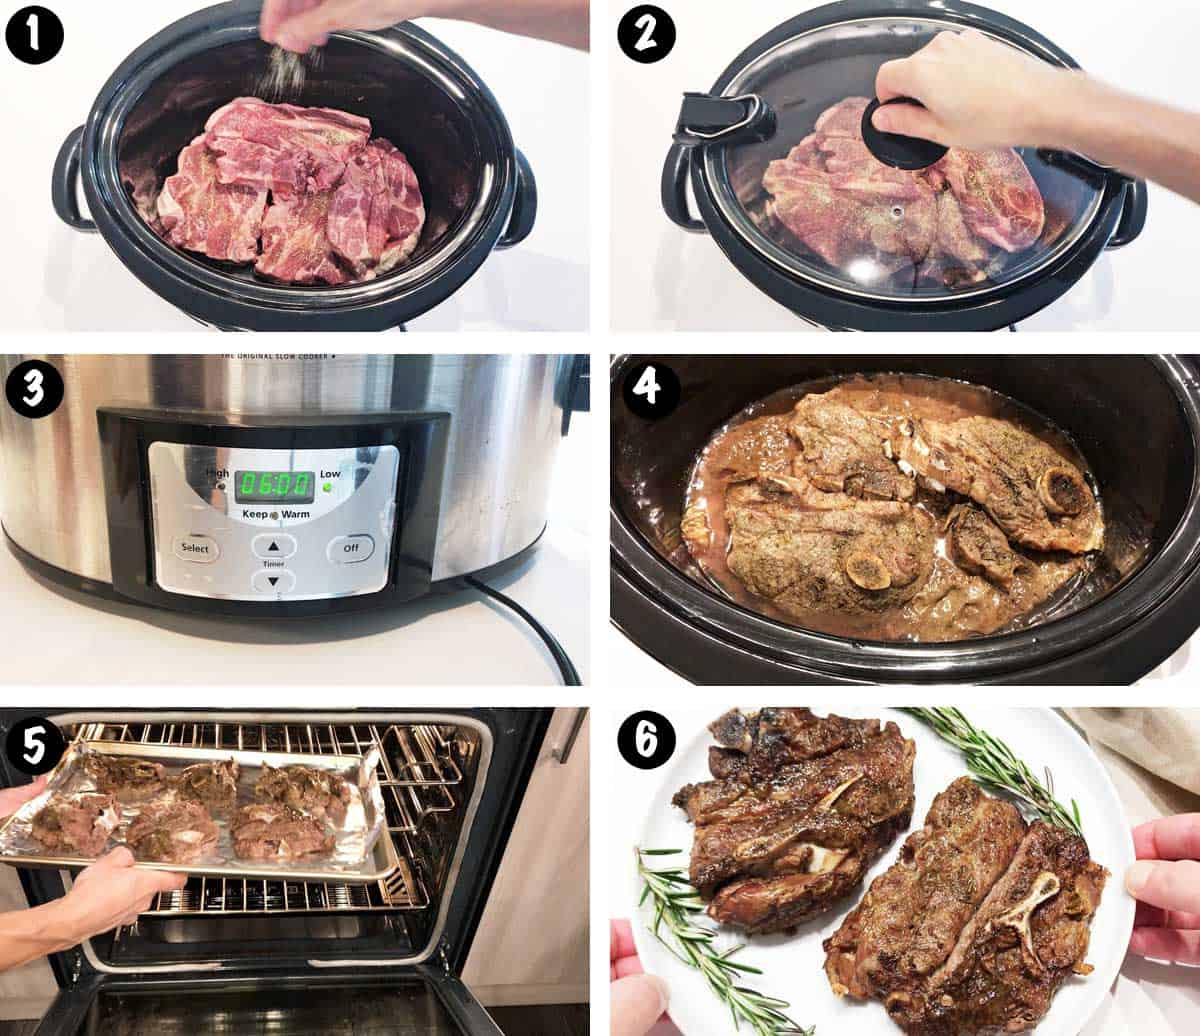 A photo collage showing the steps for cooking lamb shoulder chops in the slow cooker.